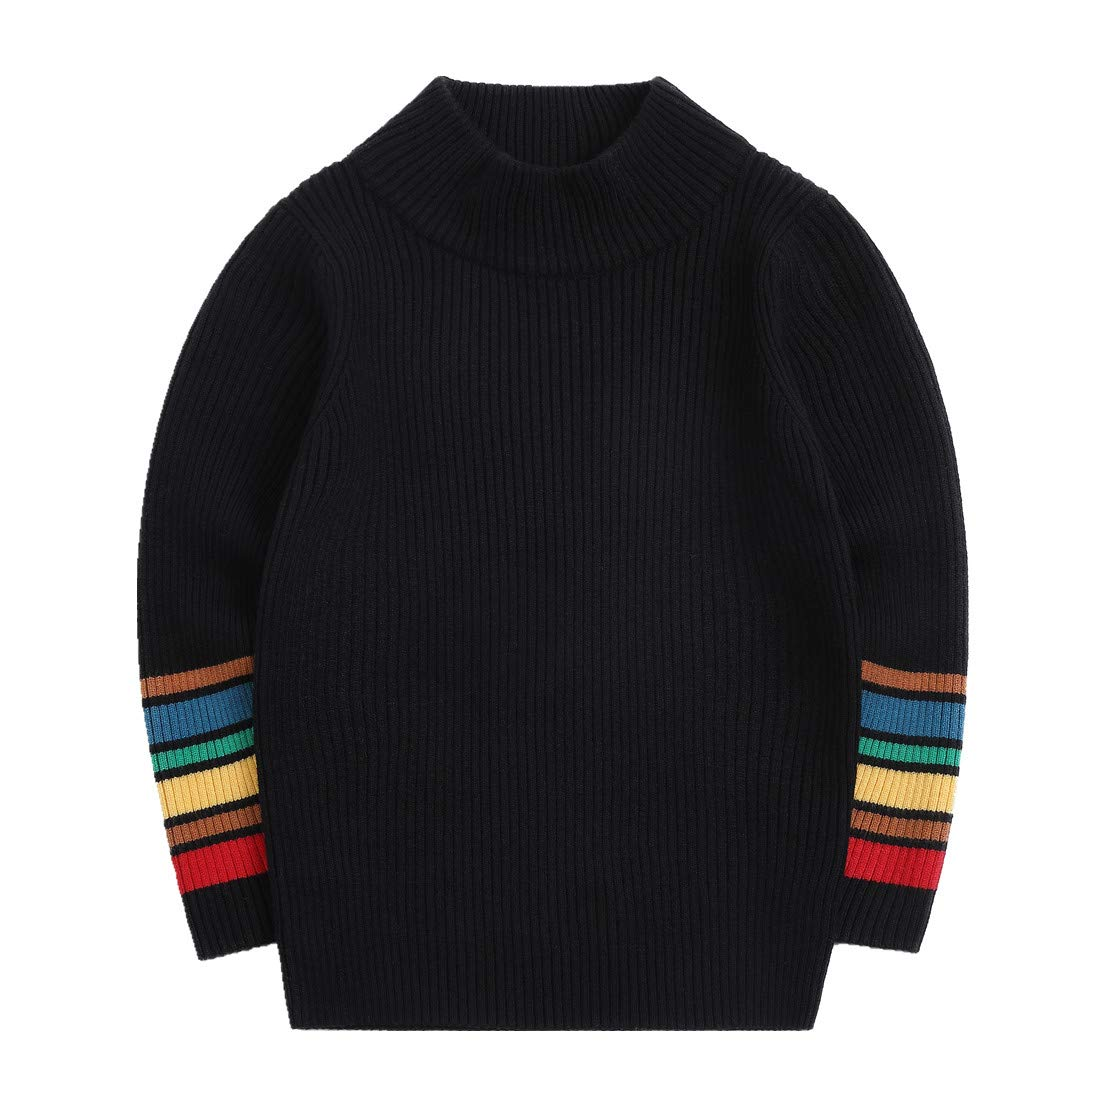 Sooxiwood Little Boys Sweater High-Collar Colorful Cuff